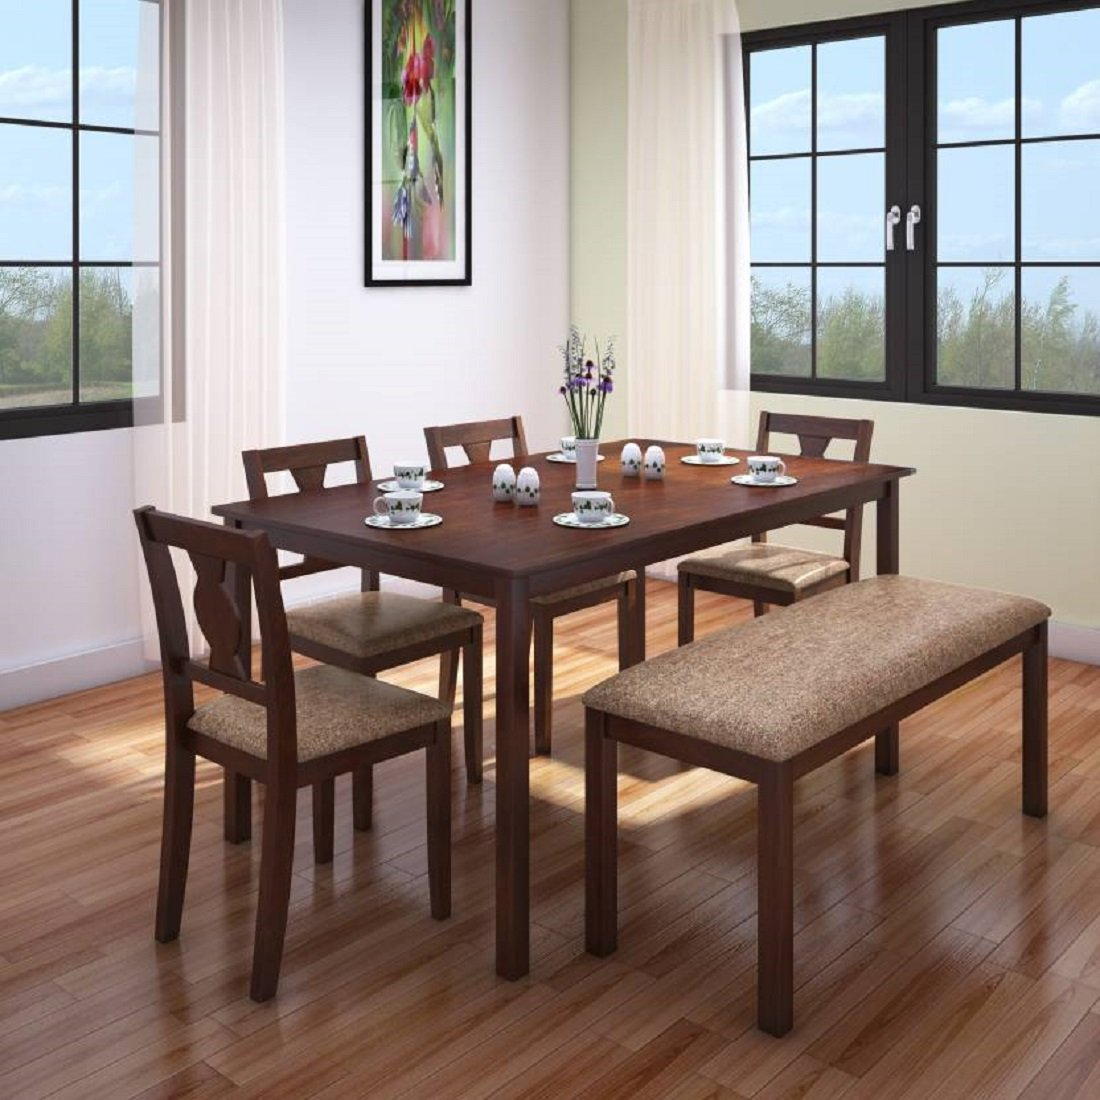 HomeTown Artois Solid Wood Six Seater Dining Set in Antique